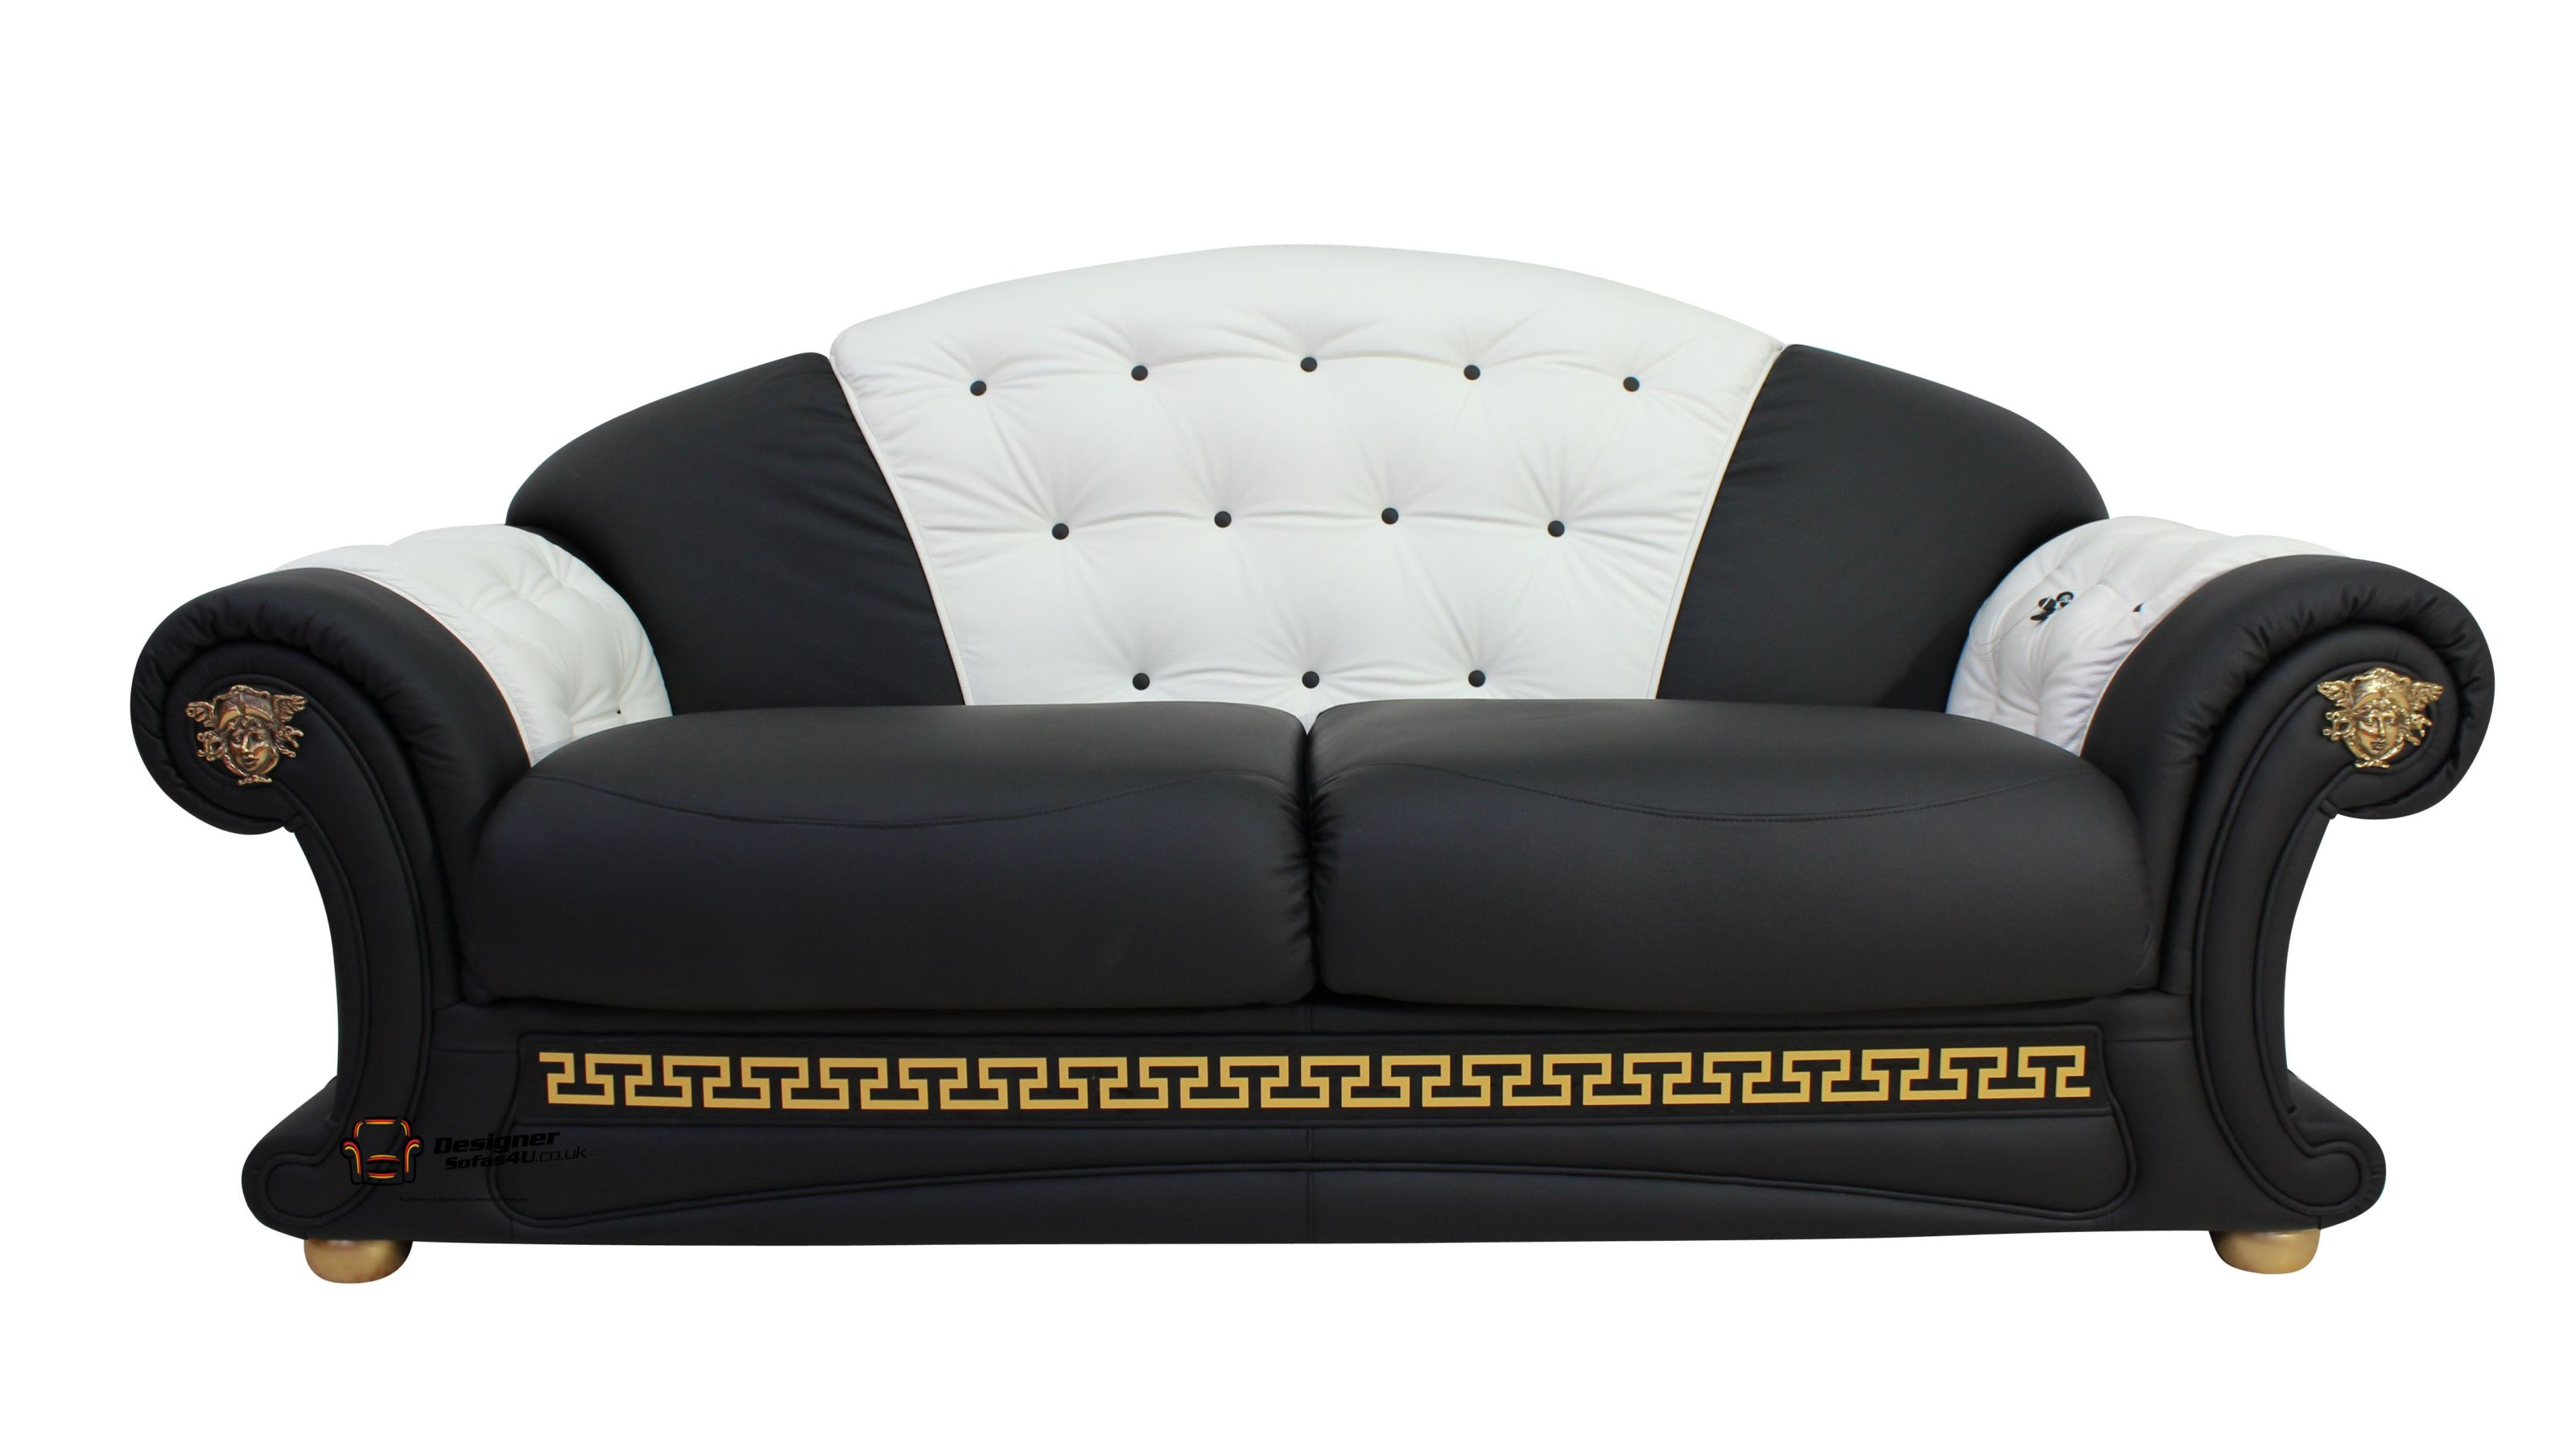 Versace 3 Seater Italian Black And White Leather Sofa Shop